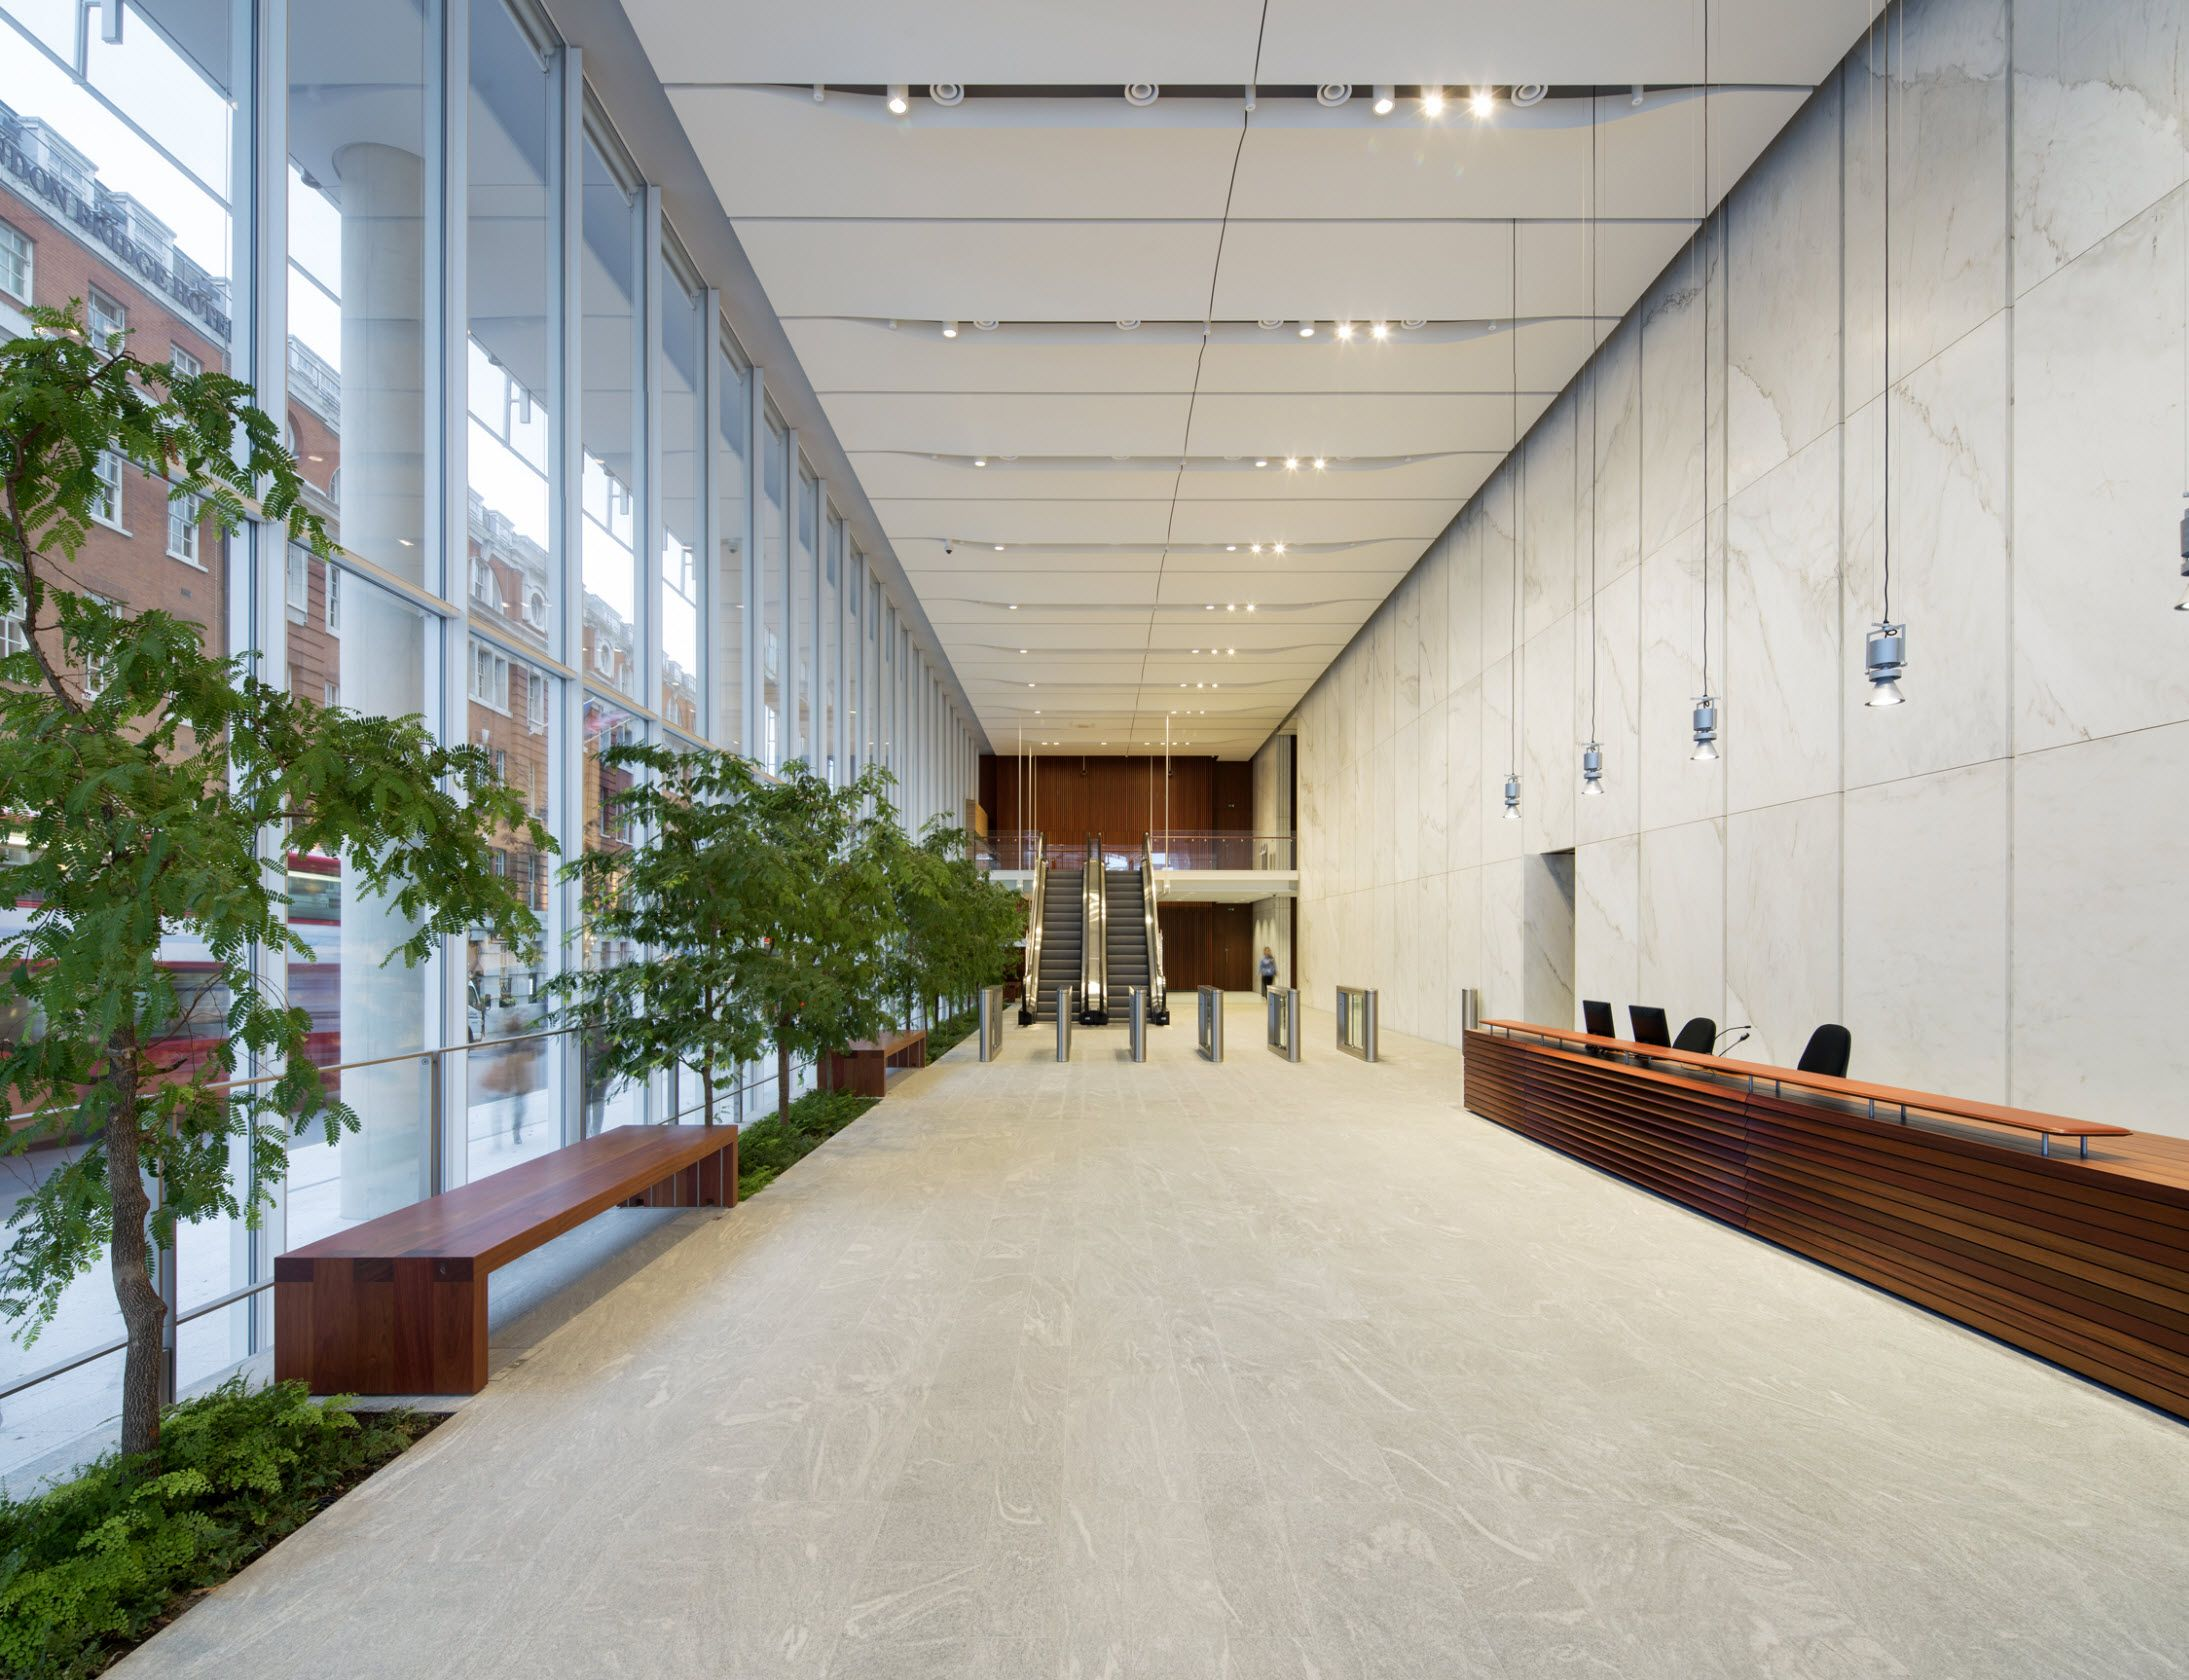 141 best office lobby warm images on Pinterest Office lobby